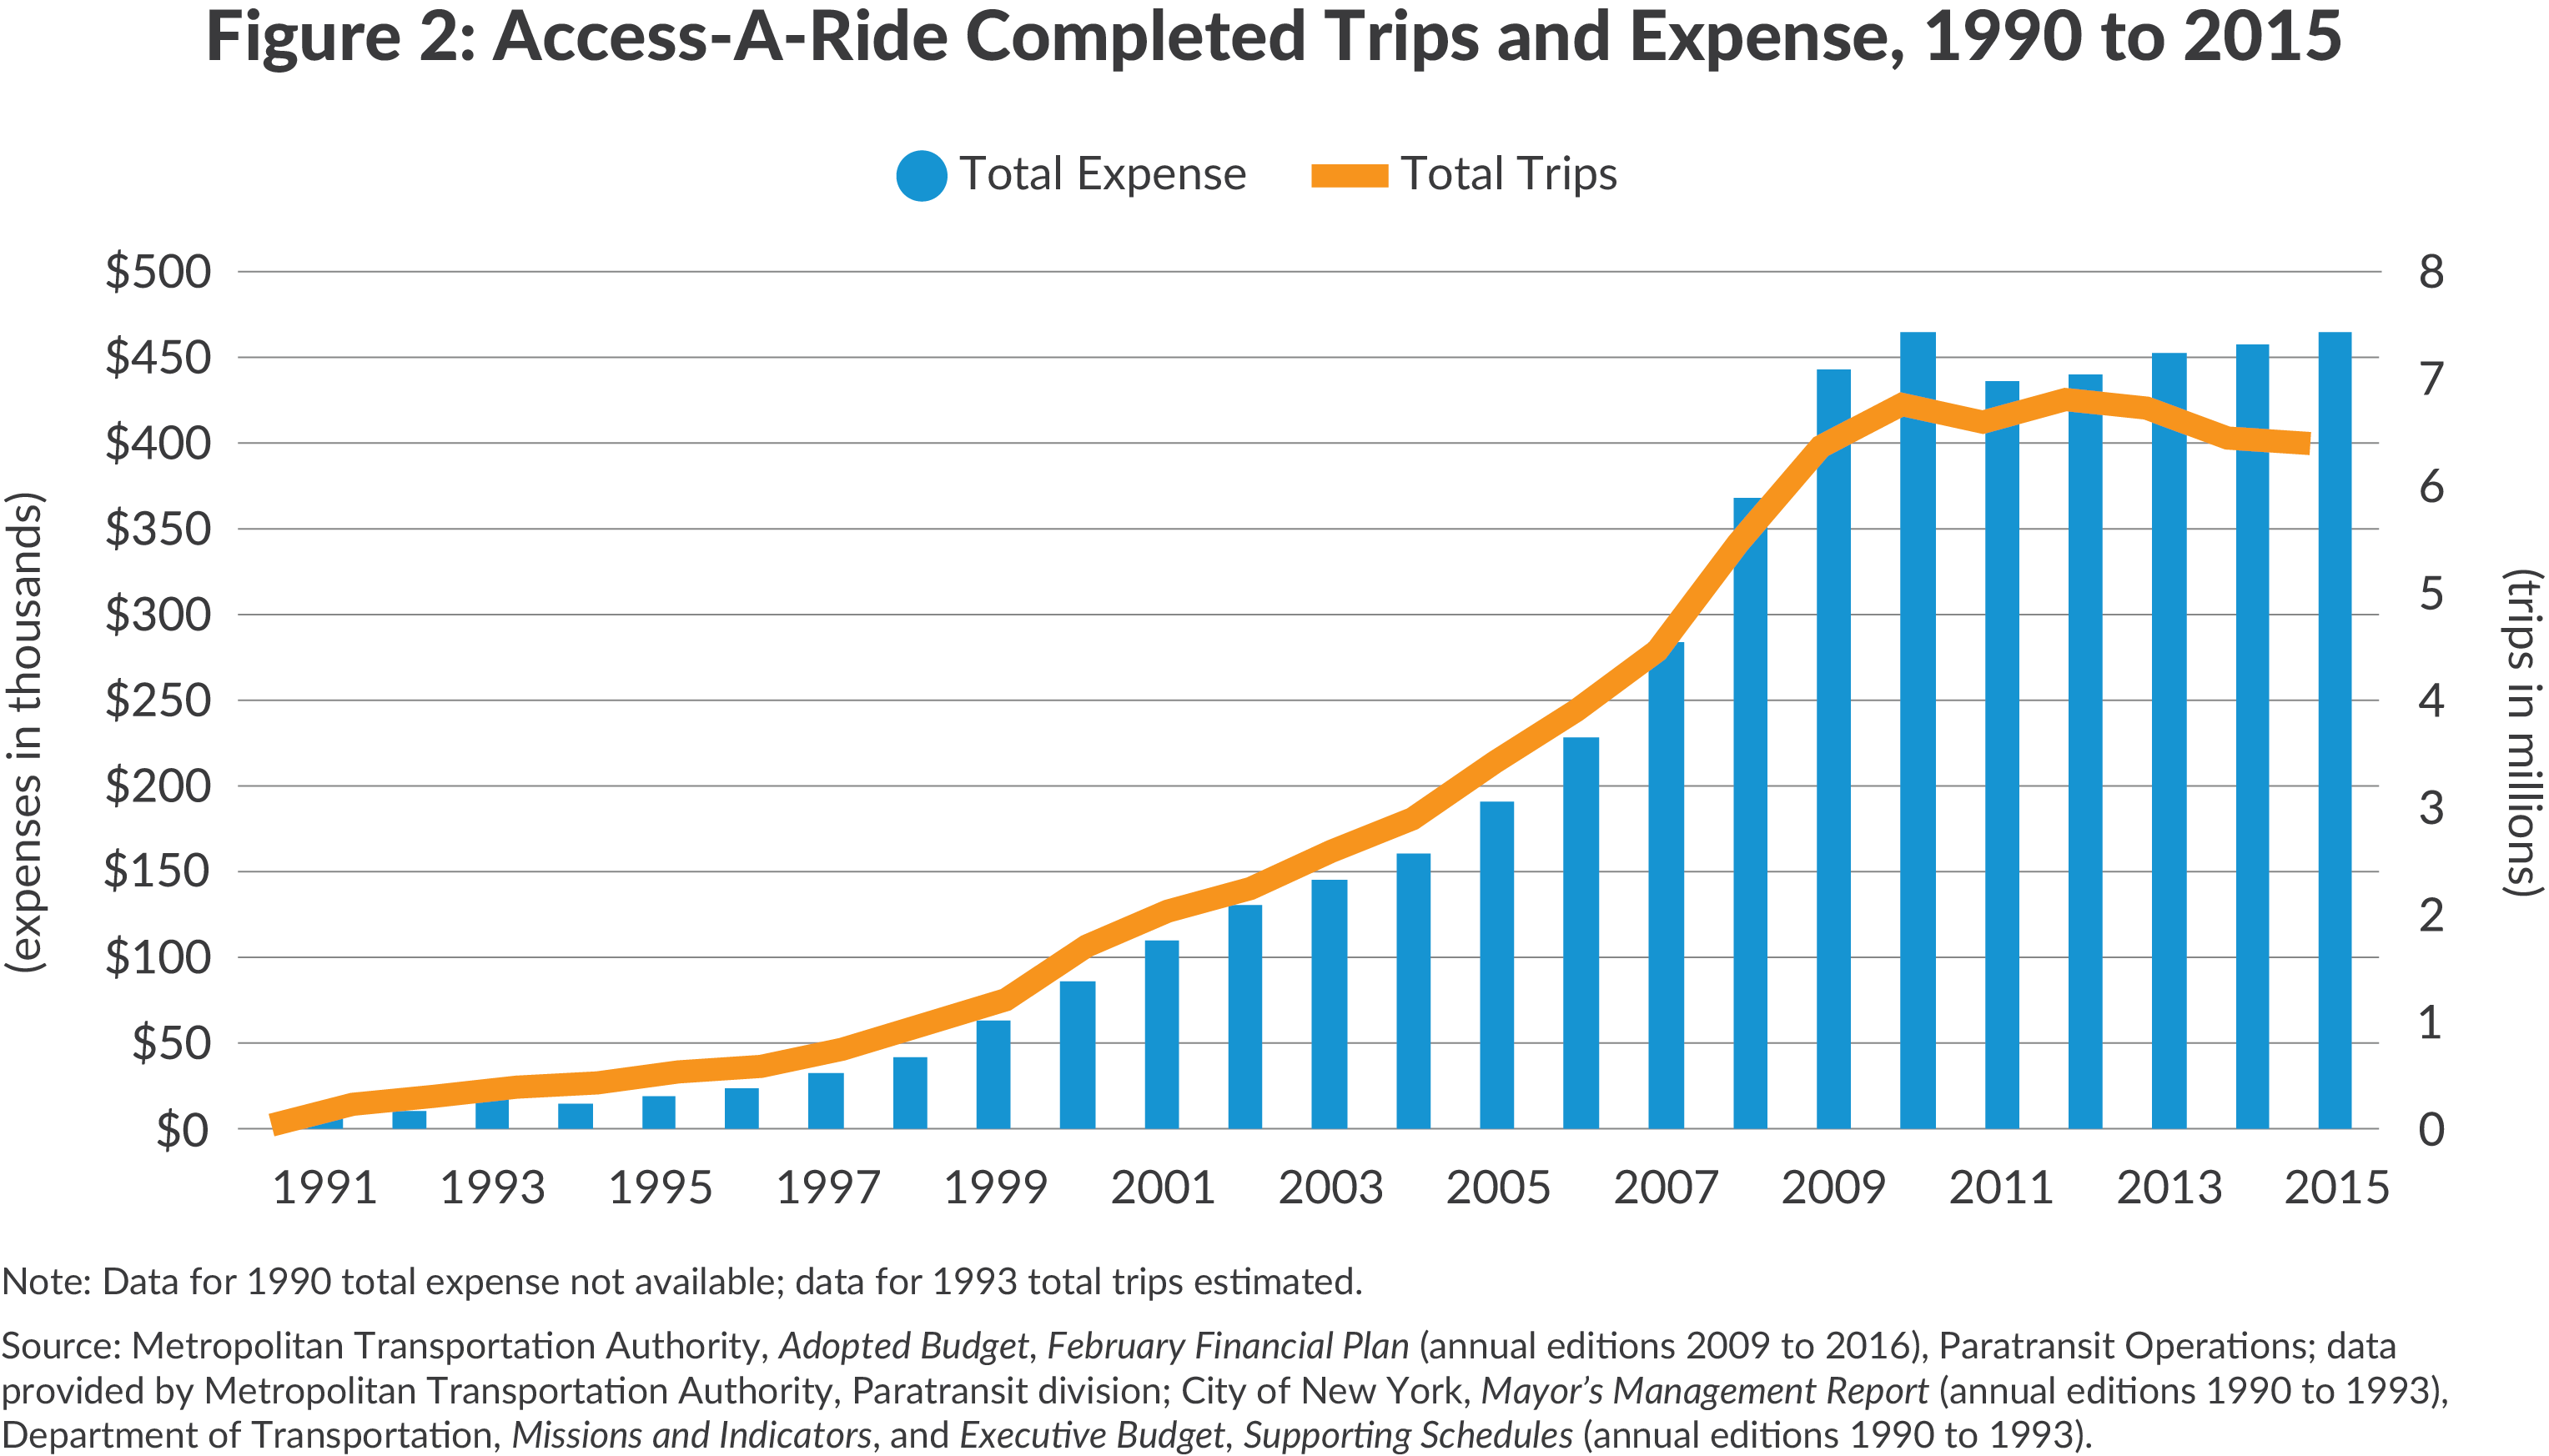 Growing trips and expenses of MTA Access-a-Ride, 1990 to 2015